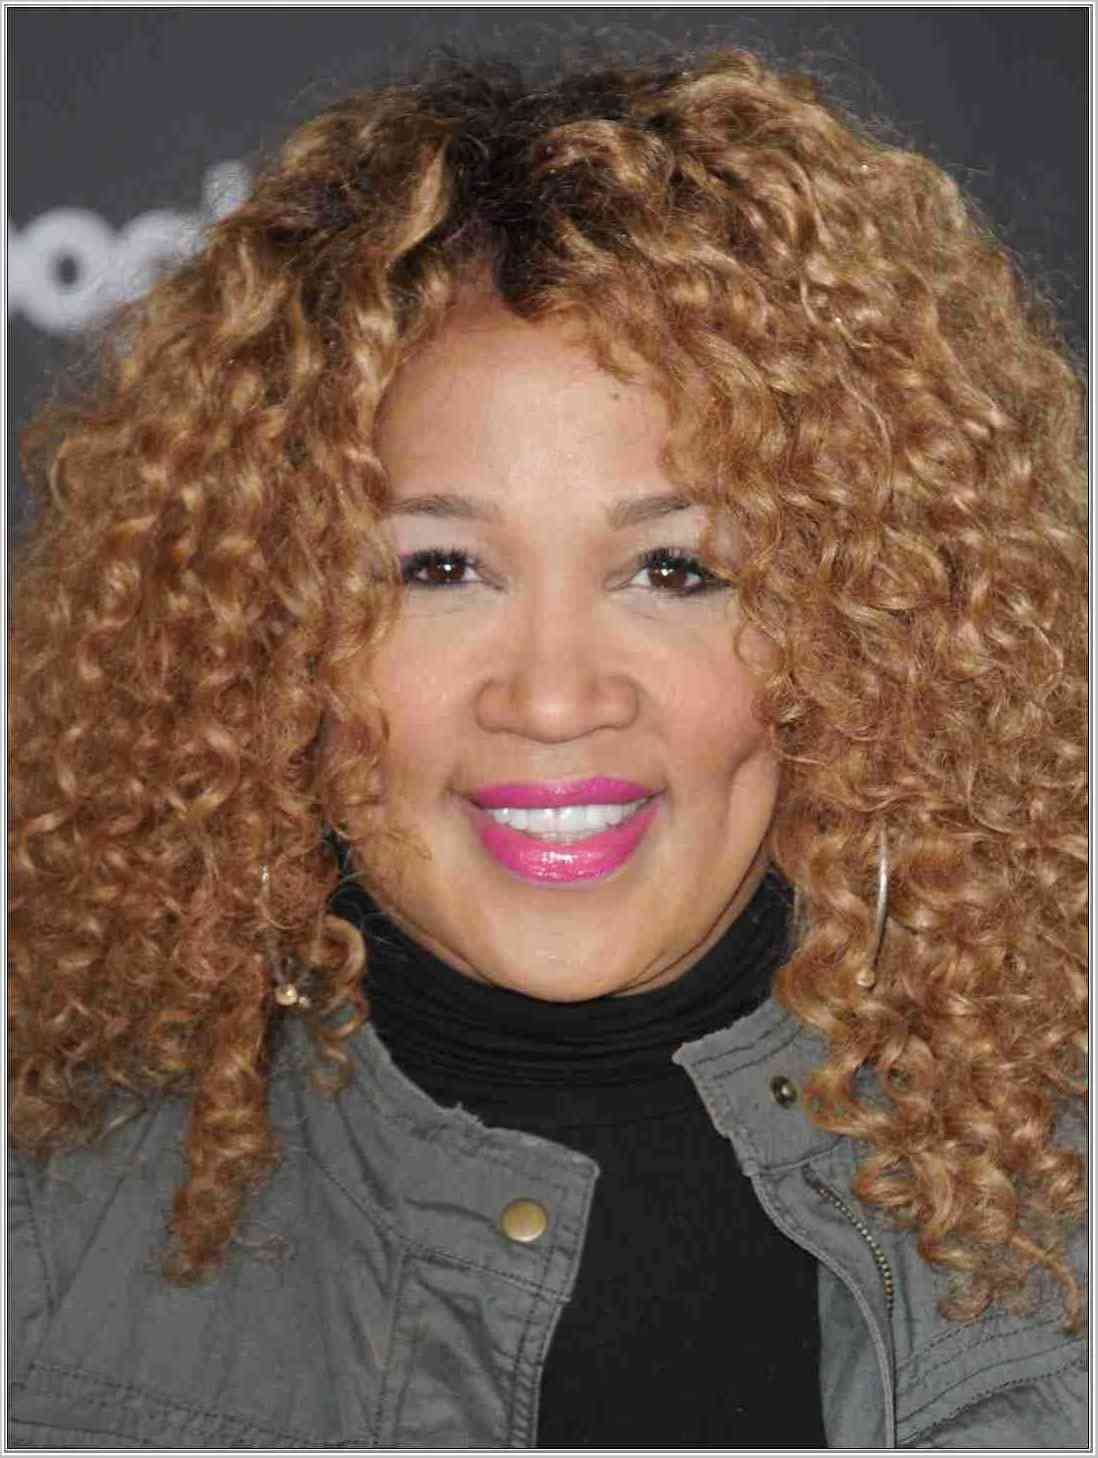 Awesome Kym Whitley Net Worth wallpapers to download for free greenvirals